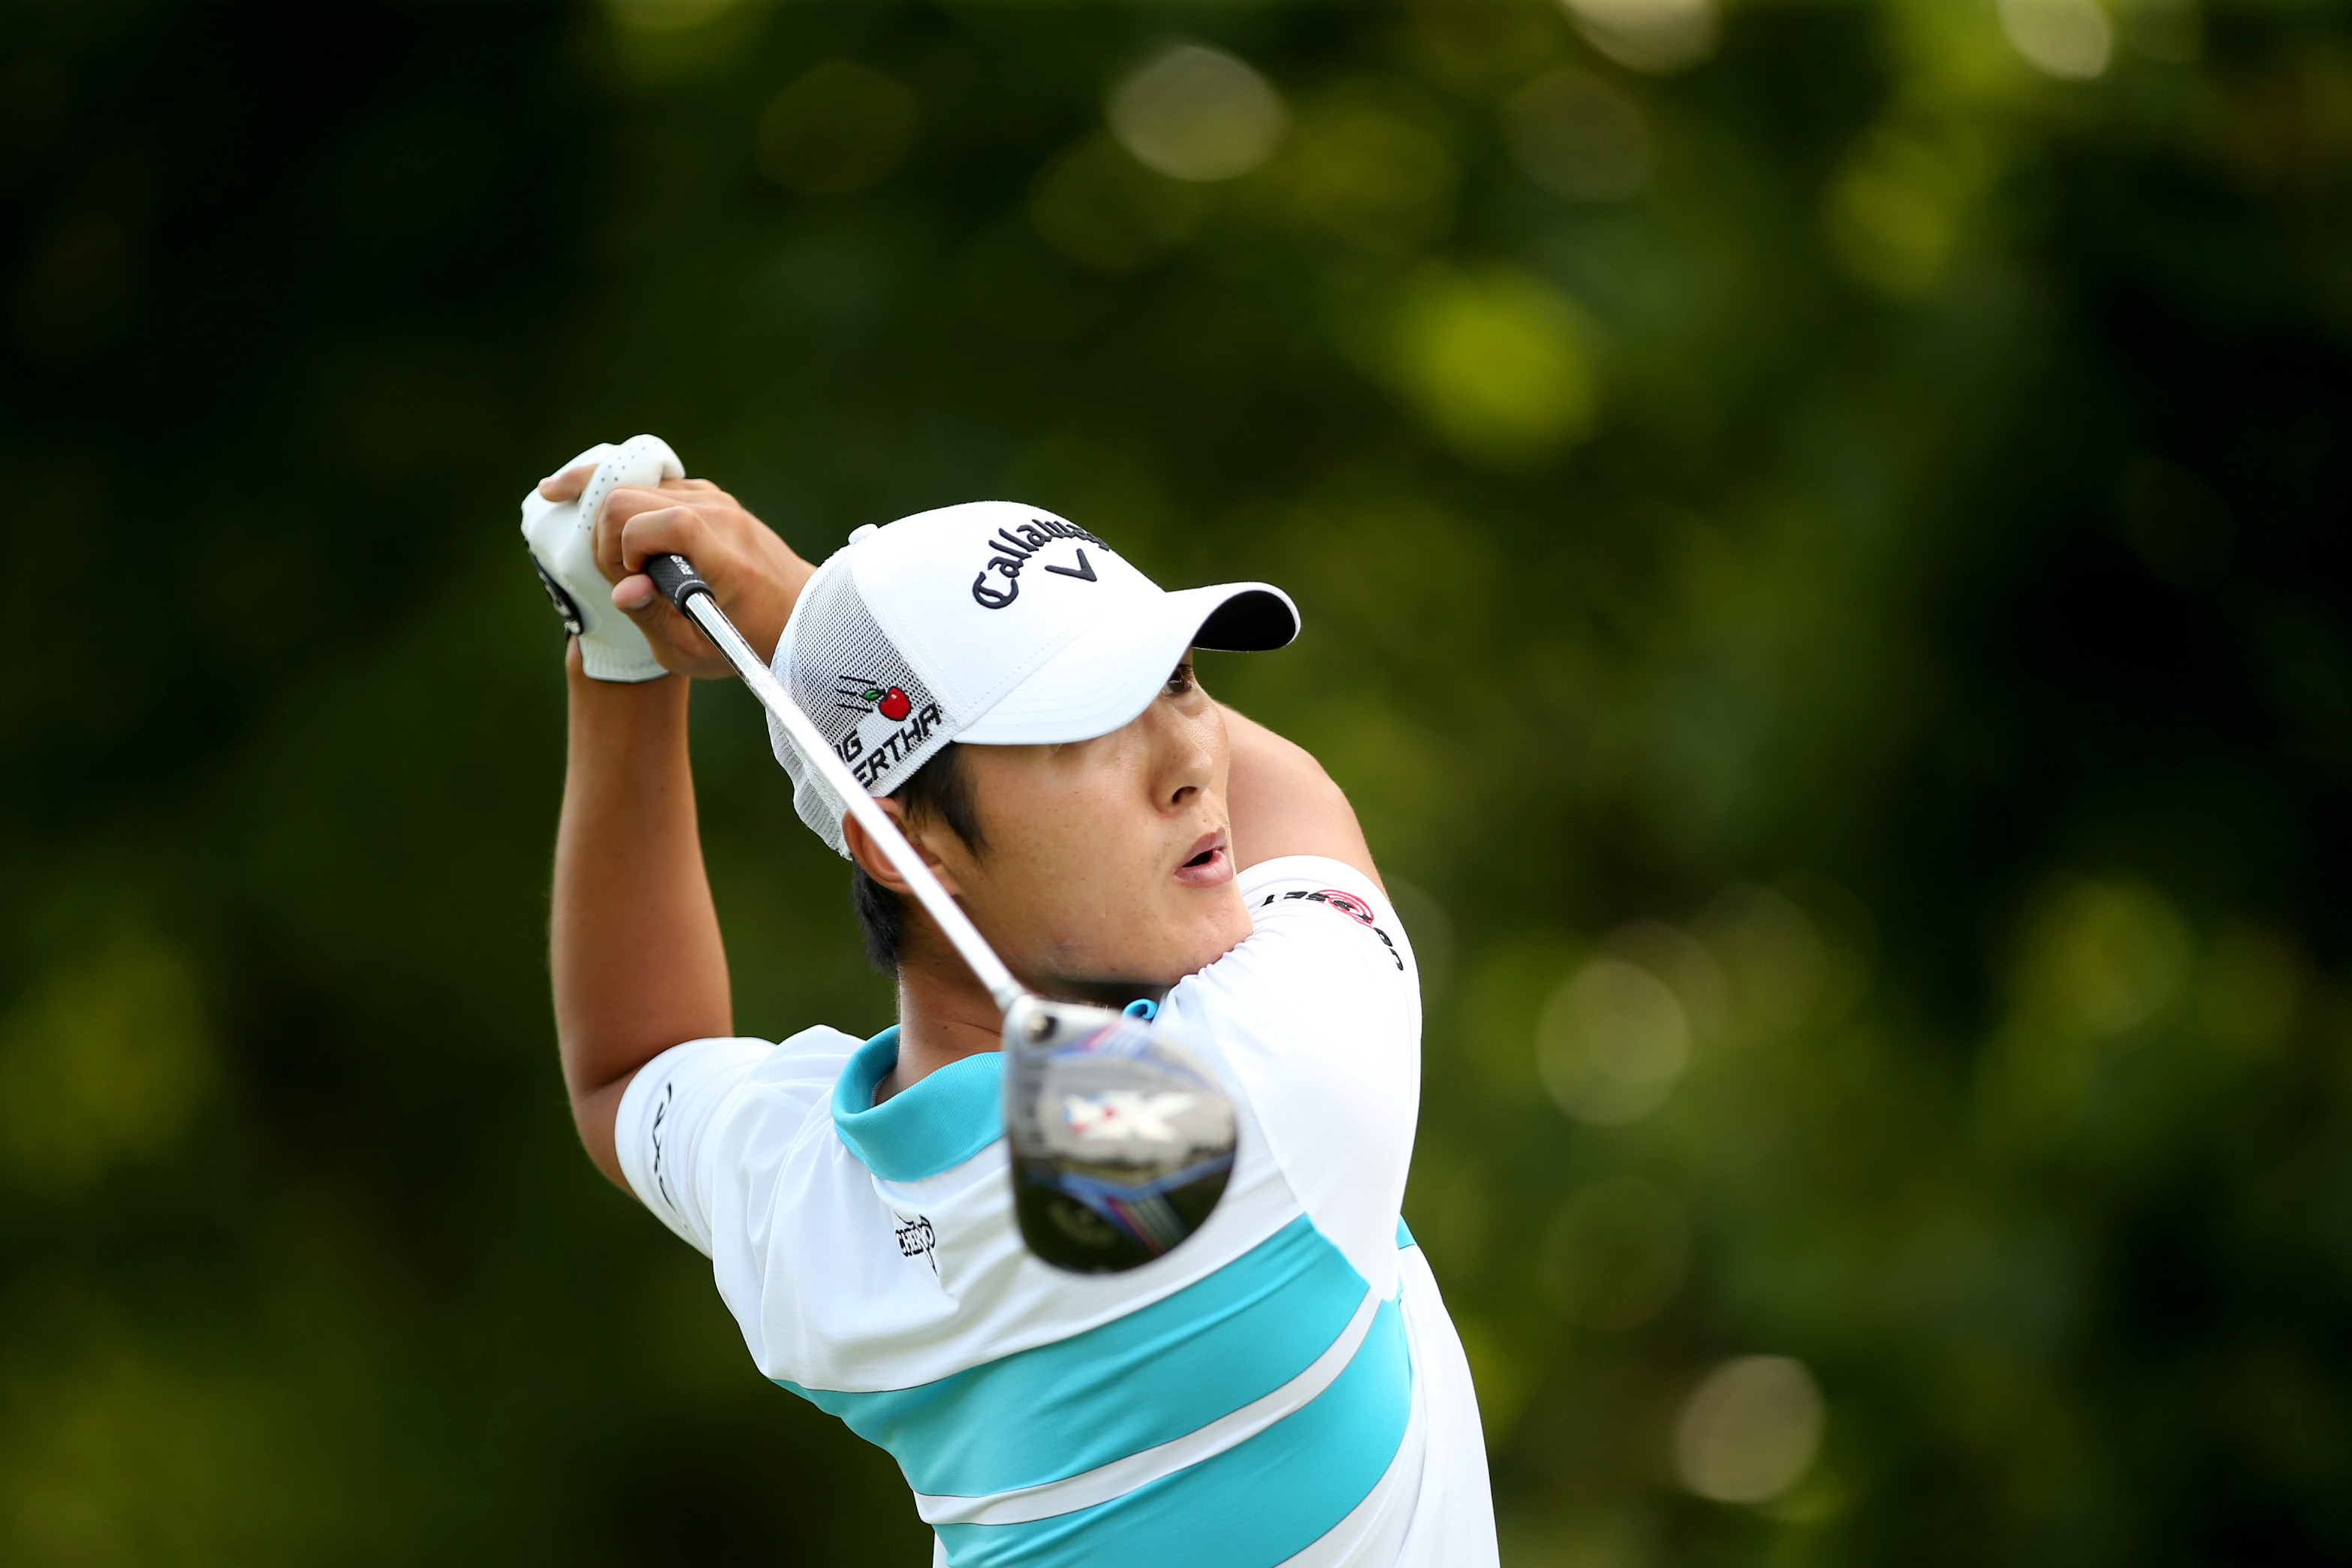 Danny Lee changes driver, wins Greenbrier